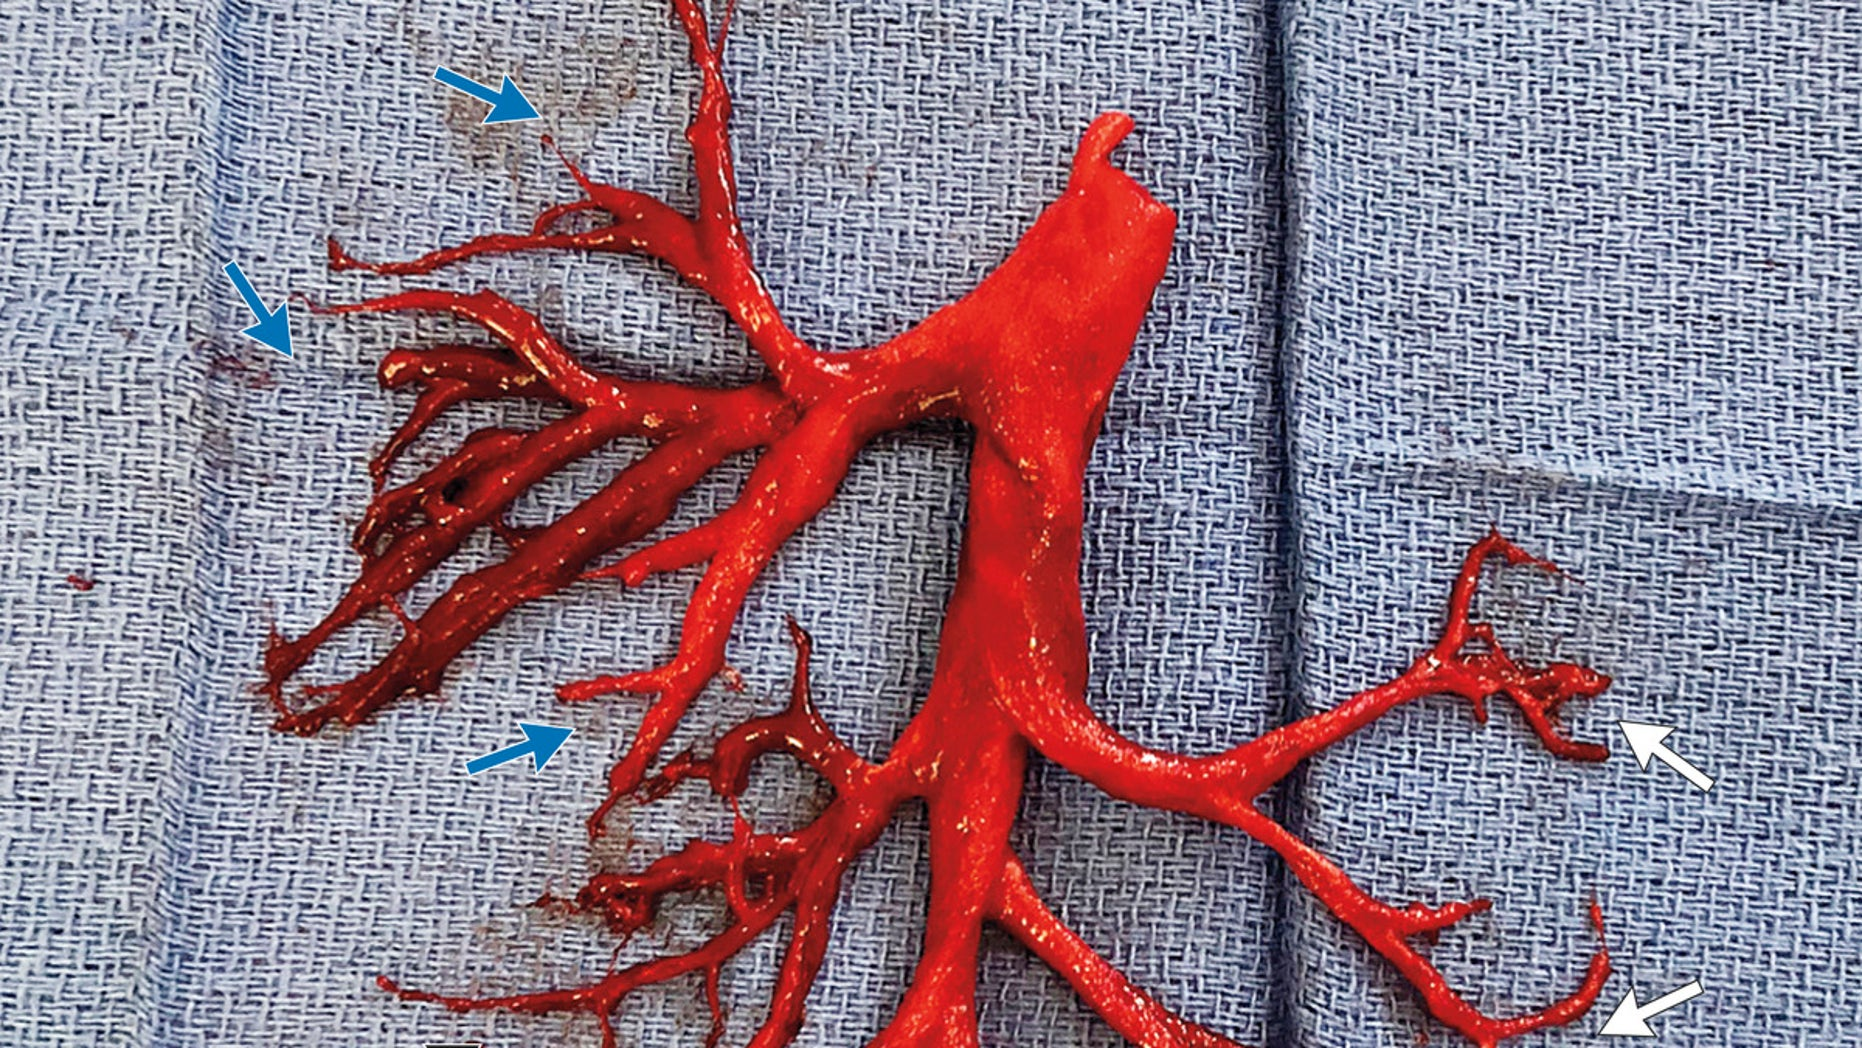 Man coughs up 'perfect' blood clot